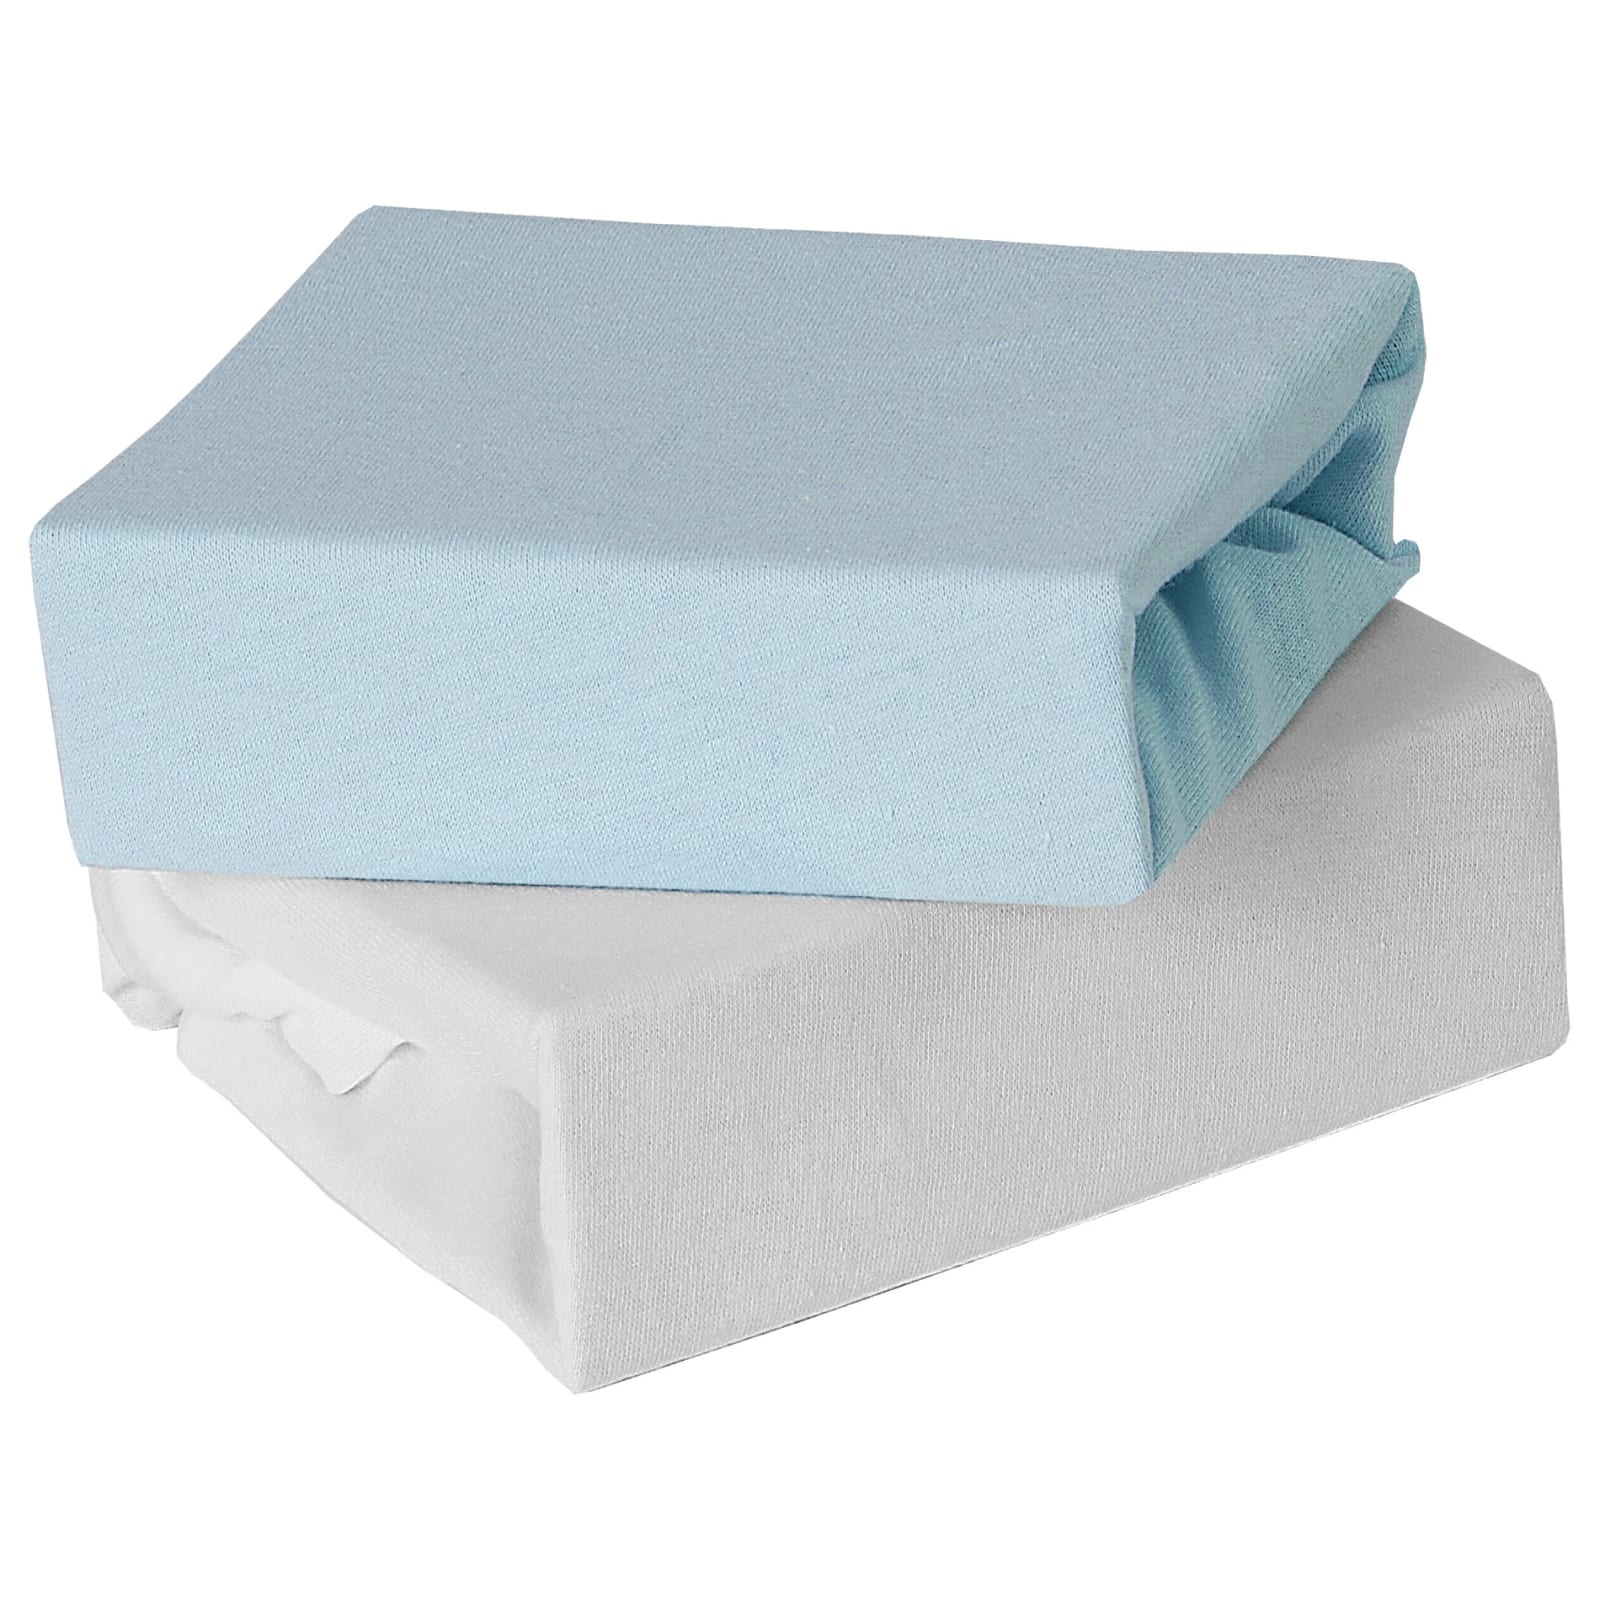 2 Pack Sheets – Travel Cot product image